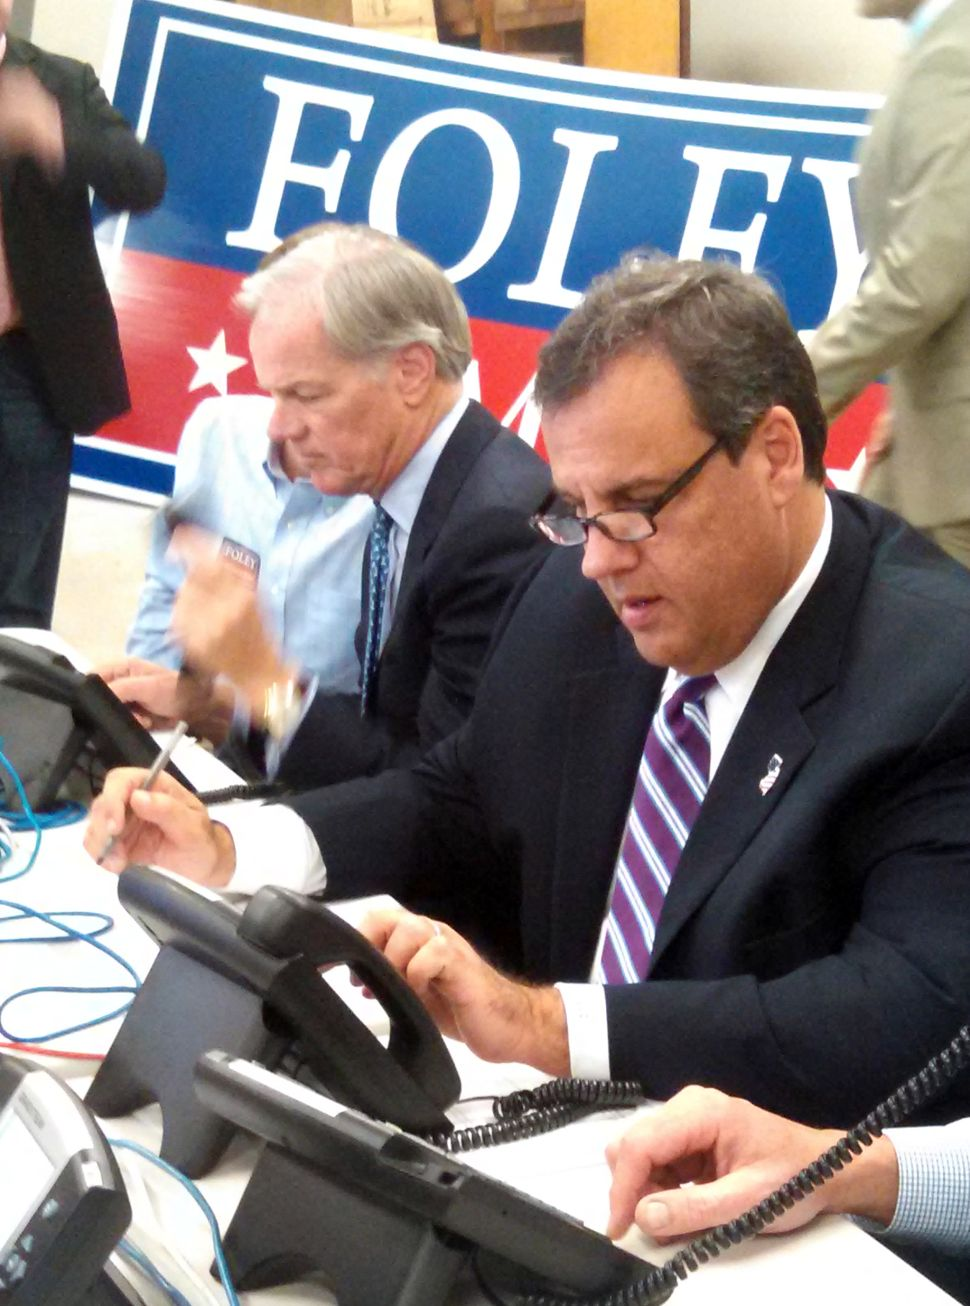 Christie slams Malloy on third visit to CT: 'He's just not a good governor'